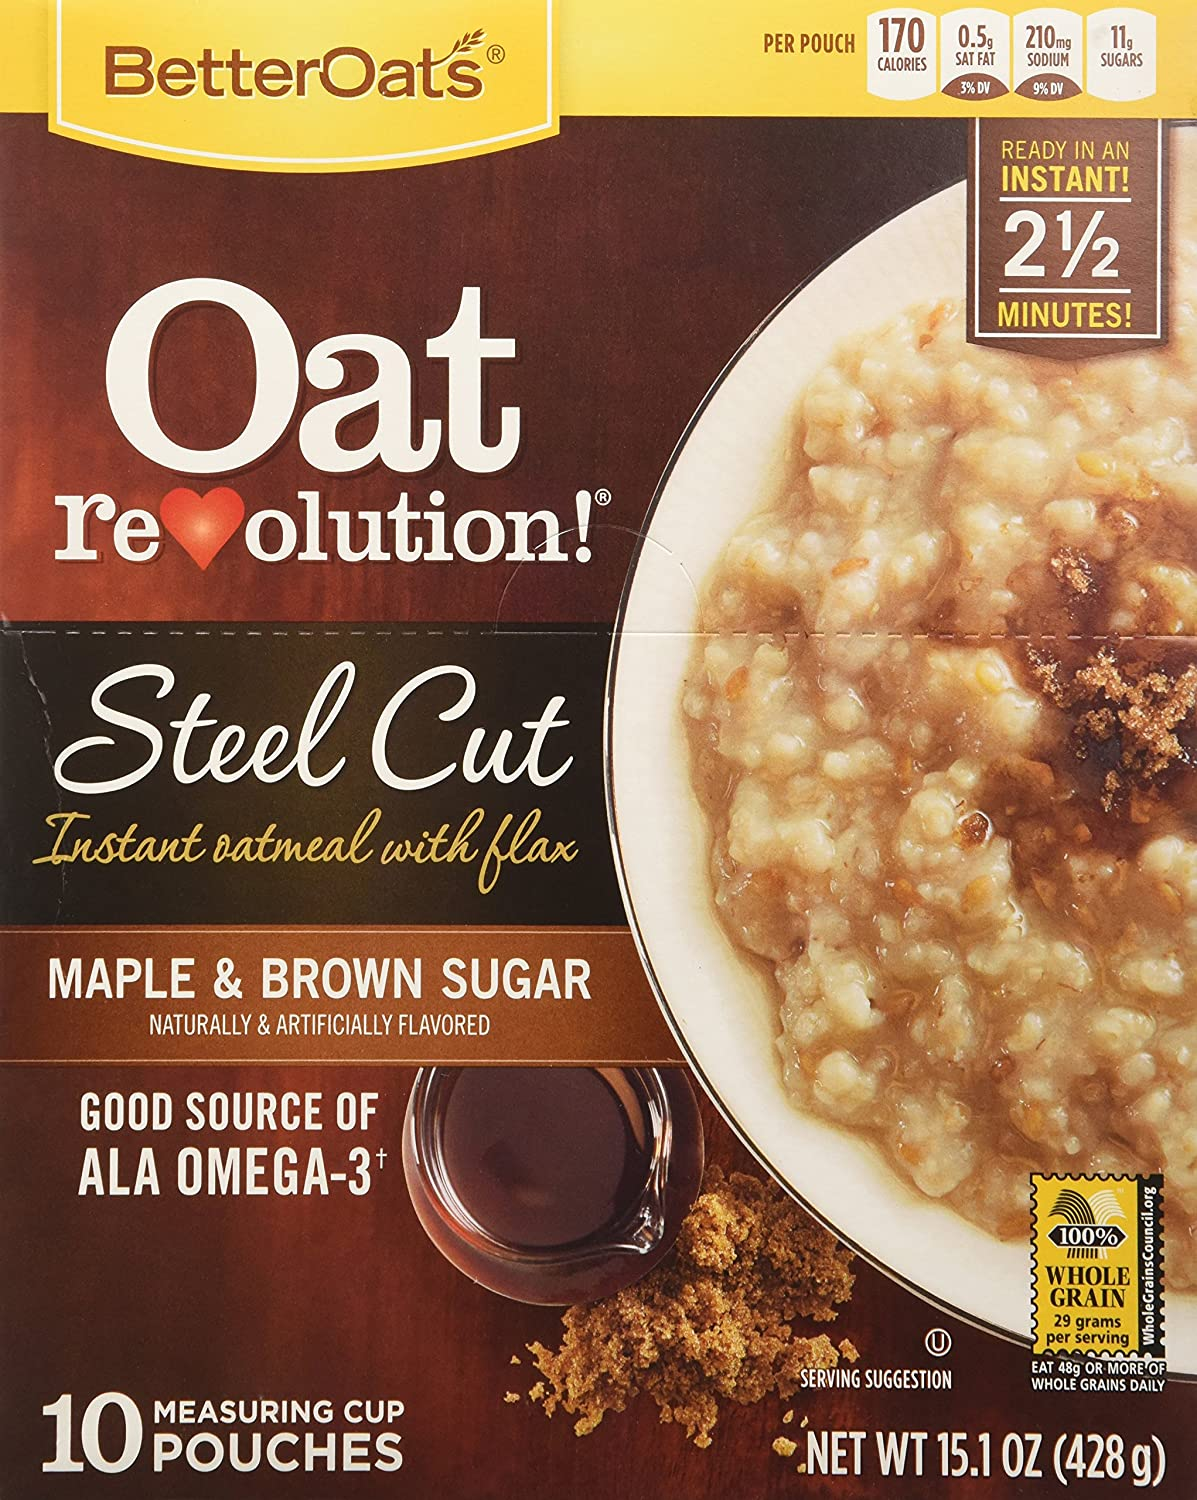 Better Oats Oat Revolution Maple and Brown Sugar Steel Cut Oats, 15.1 Ounce -- 6 per case.